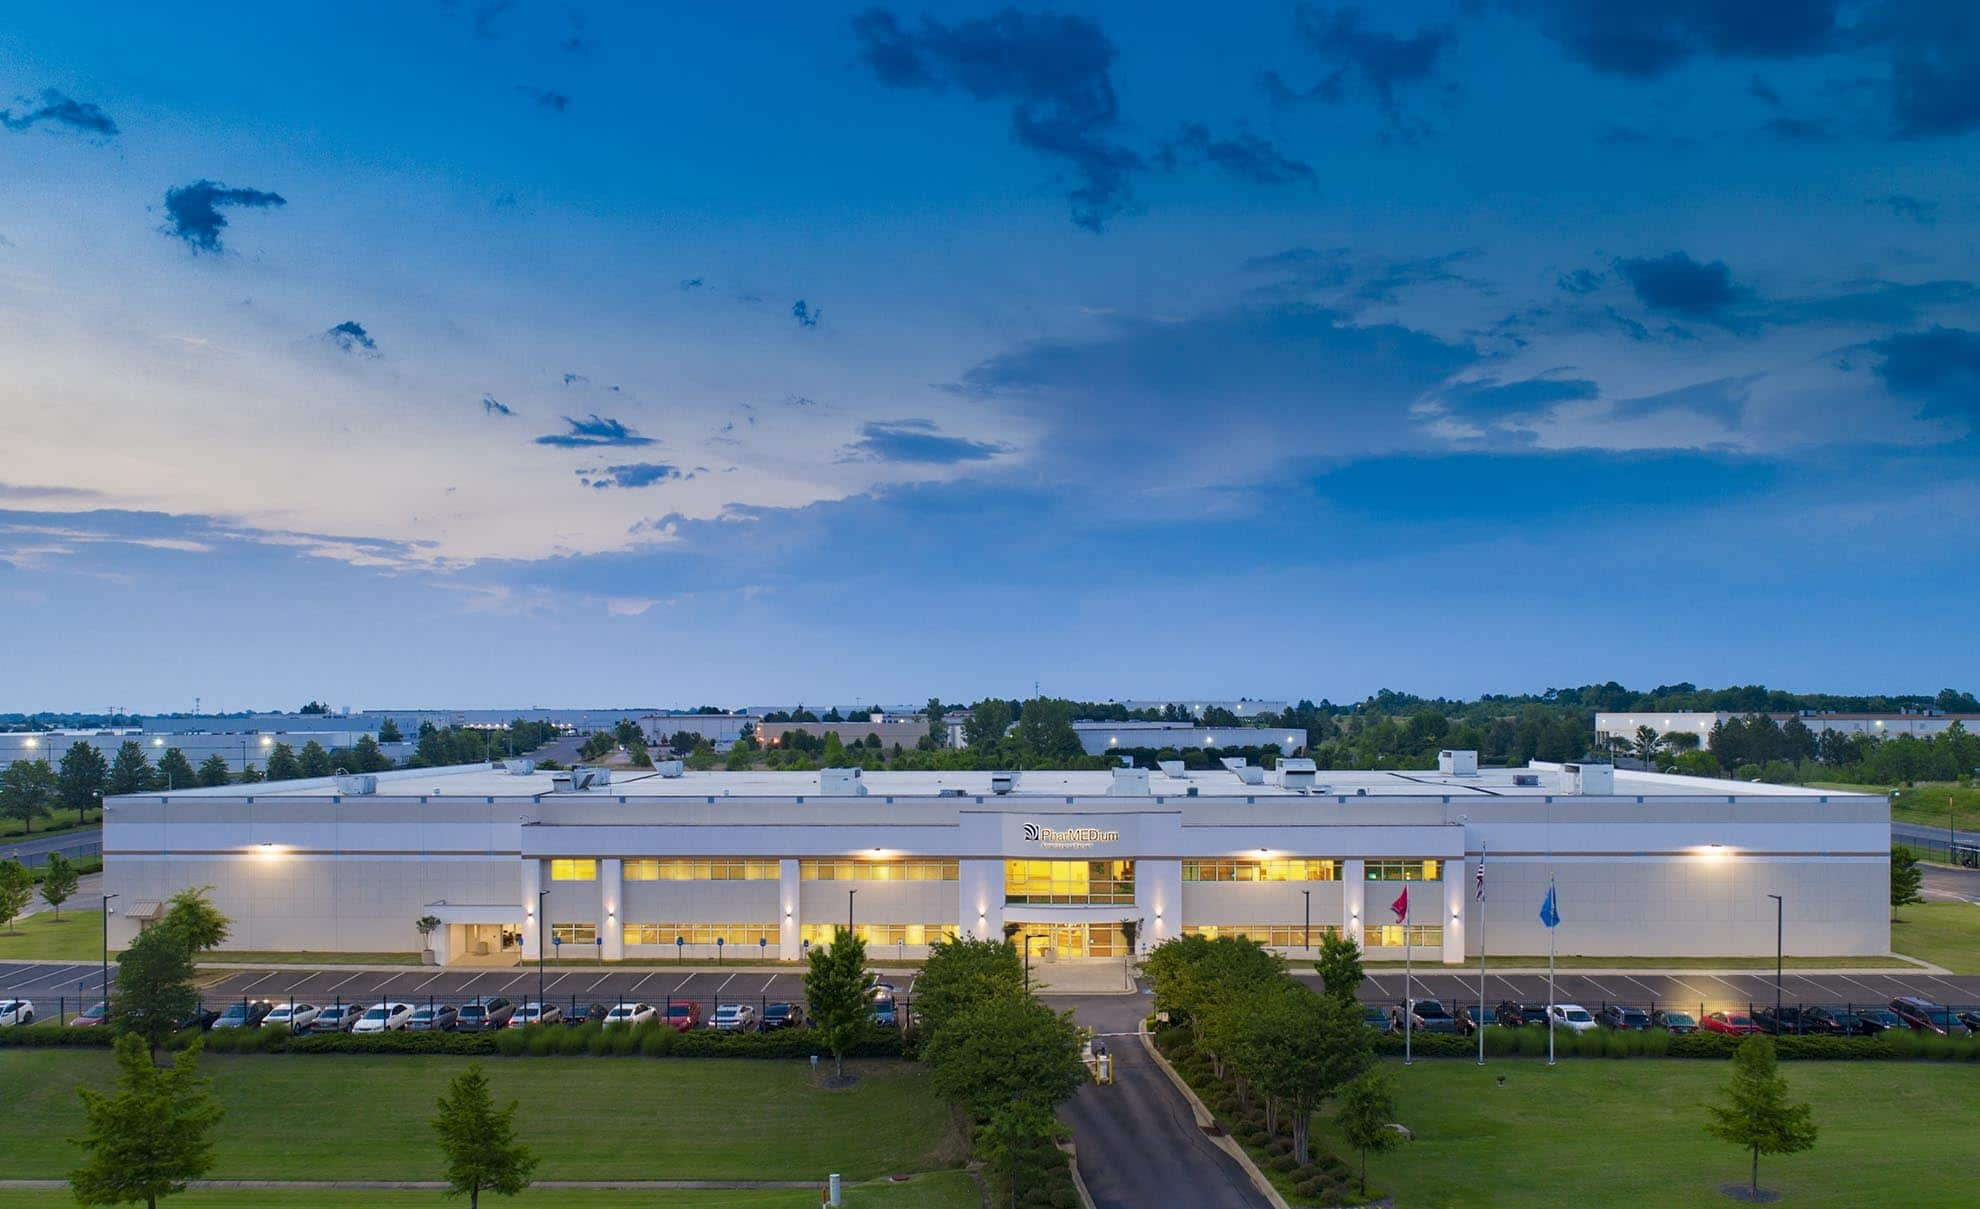 Drone Photograph taken of Commercial Building in Memphis Tennessee